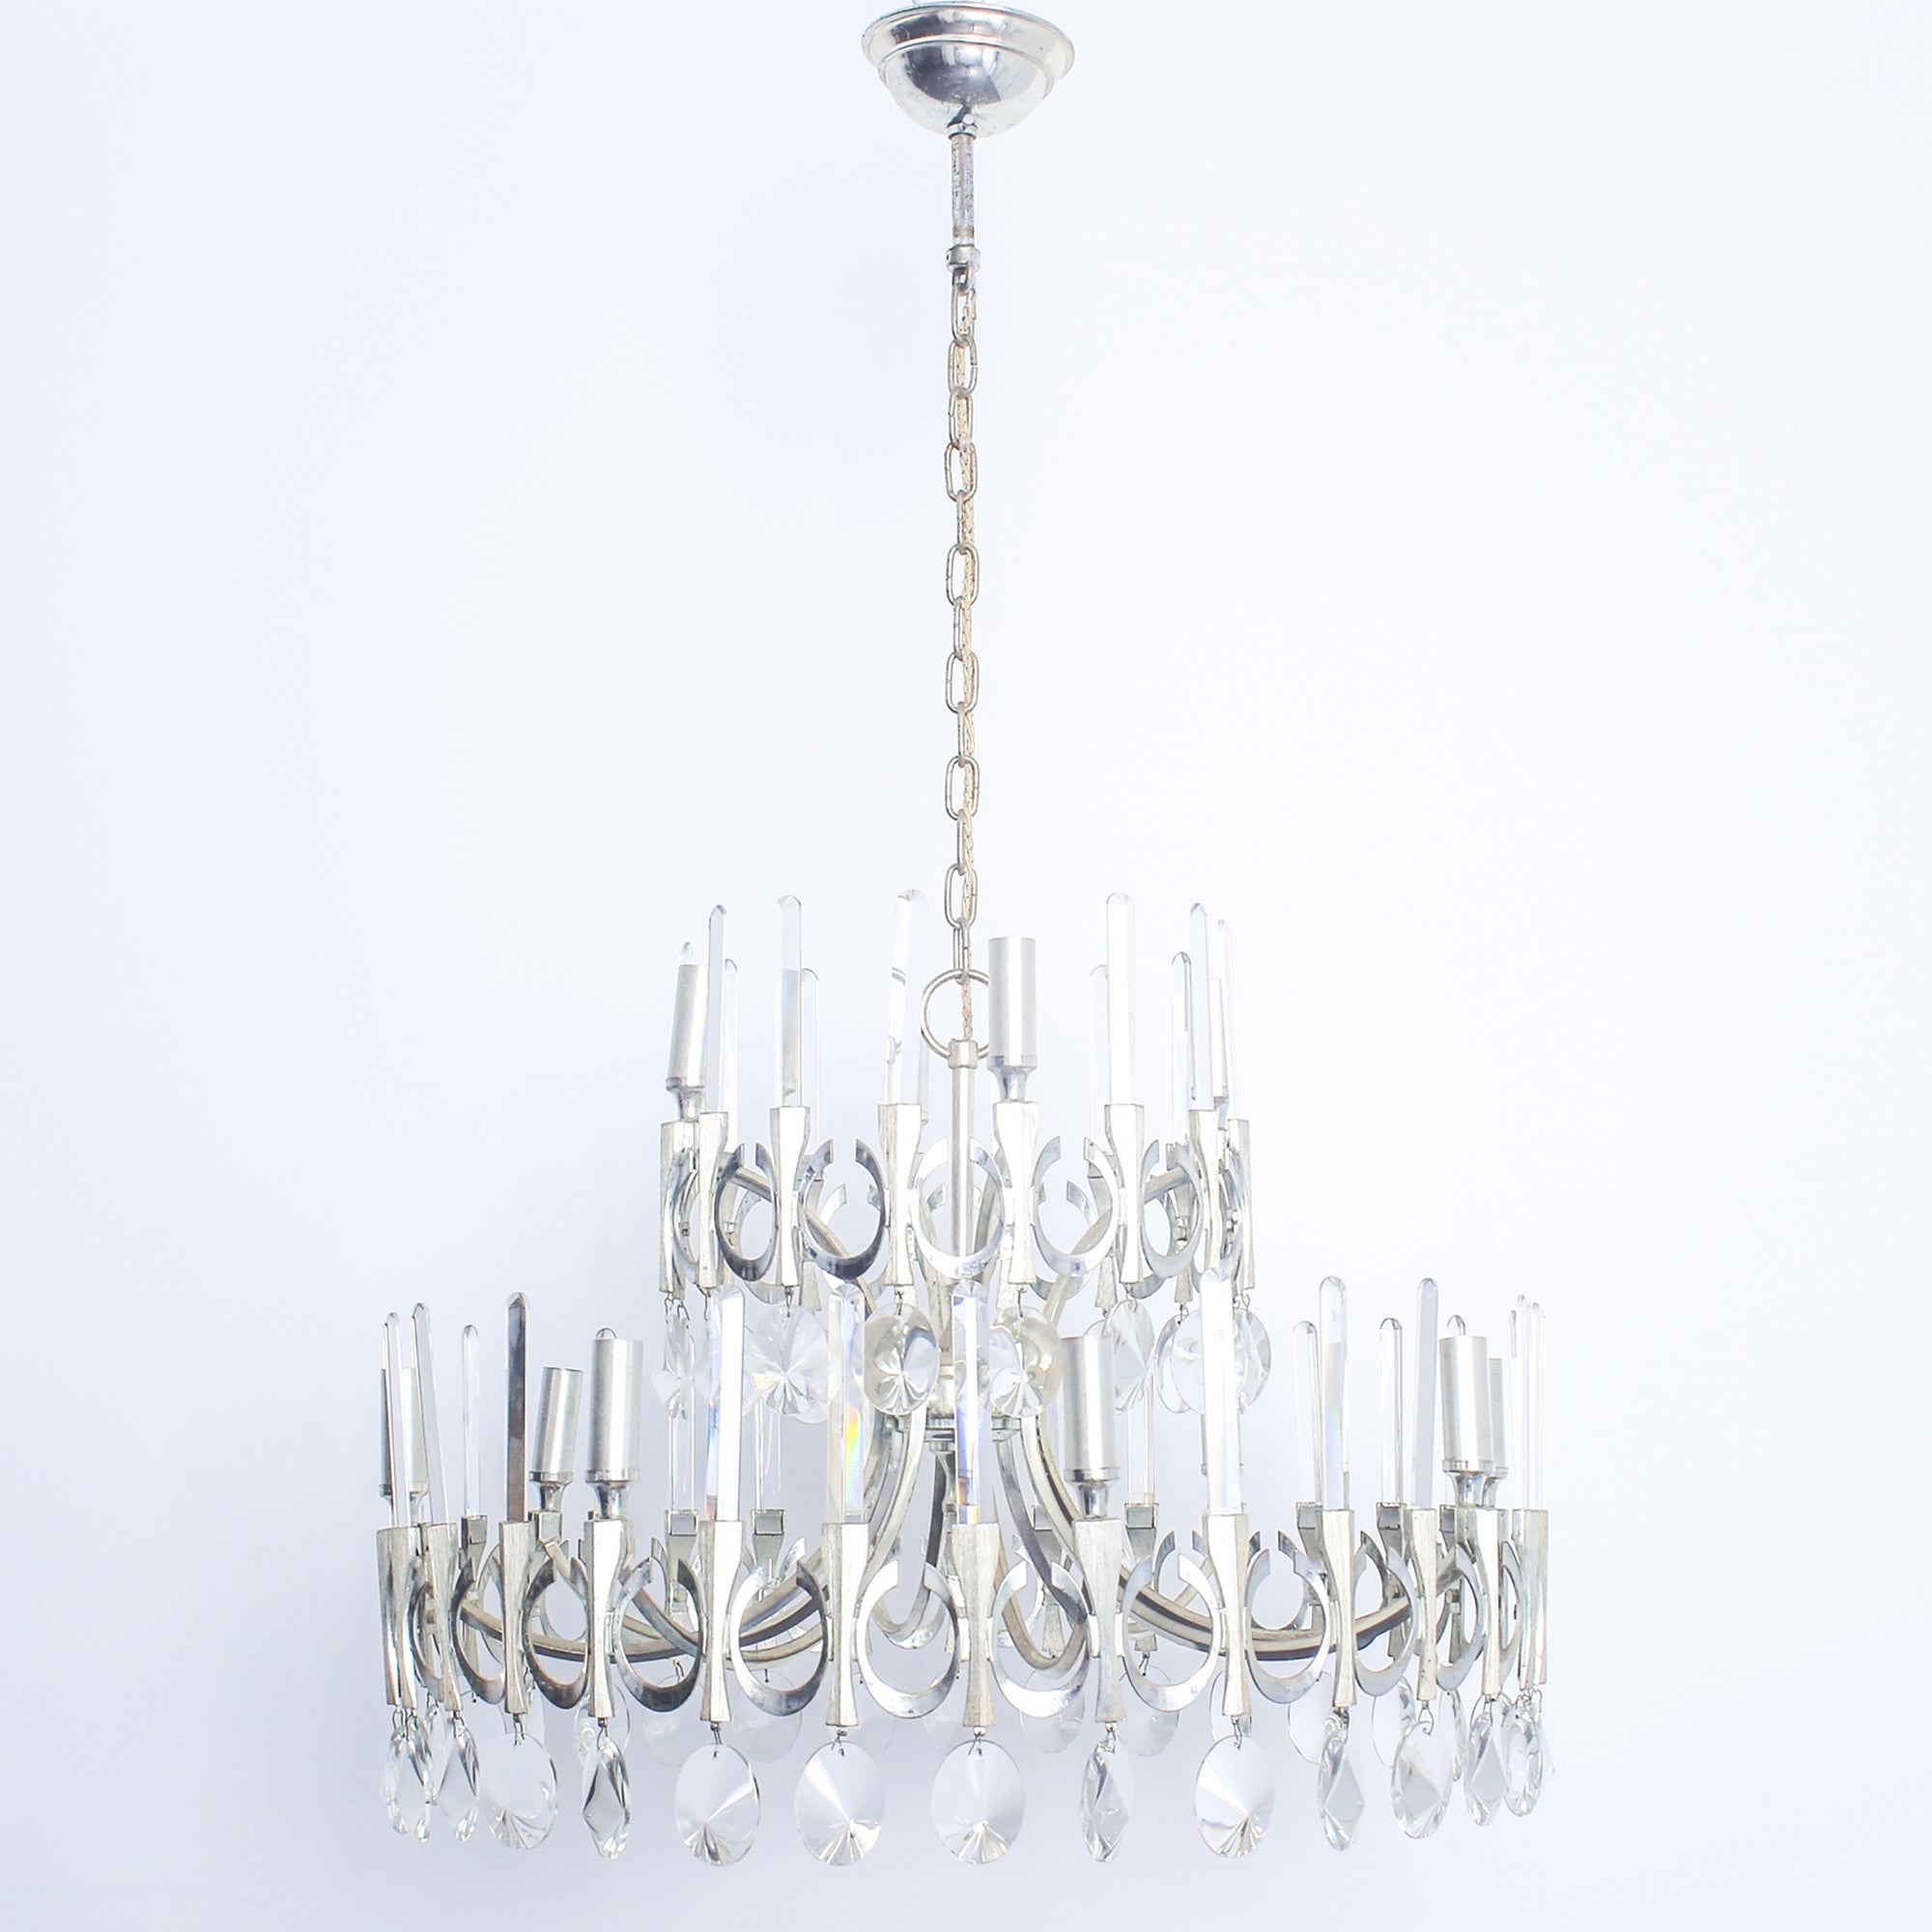 Image of: Mid Century Modern Silver Plated Crystal Chandelier Gaetano Sciolari Lumini Collections